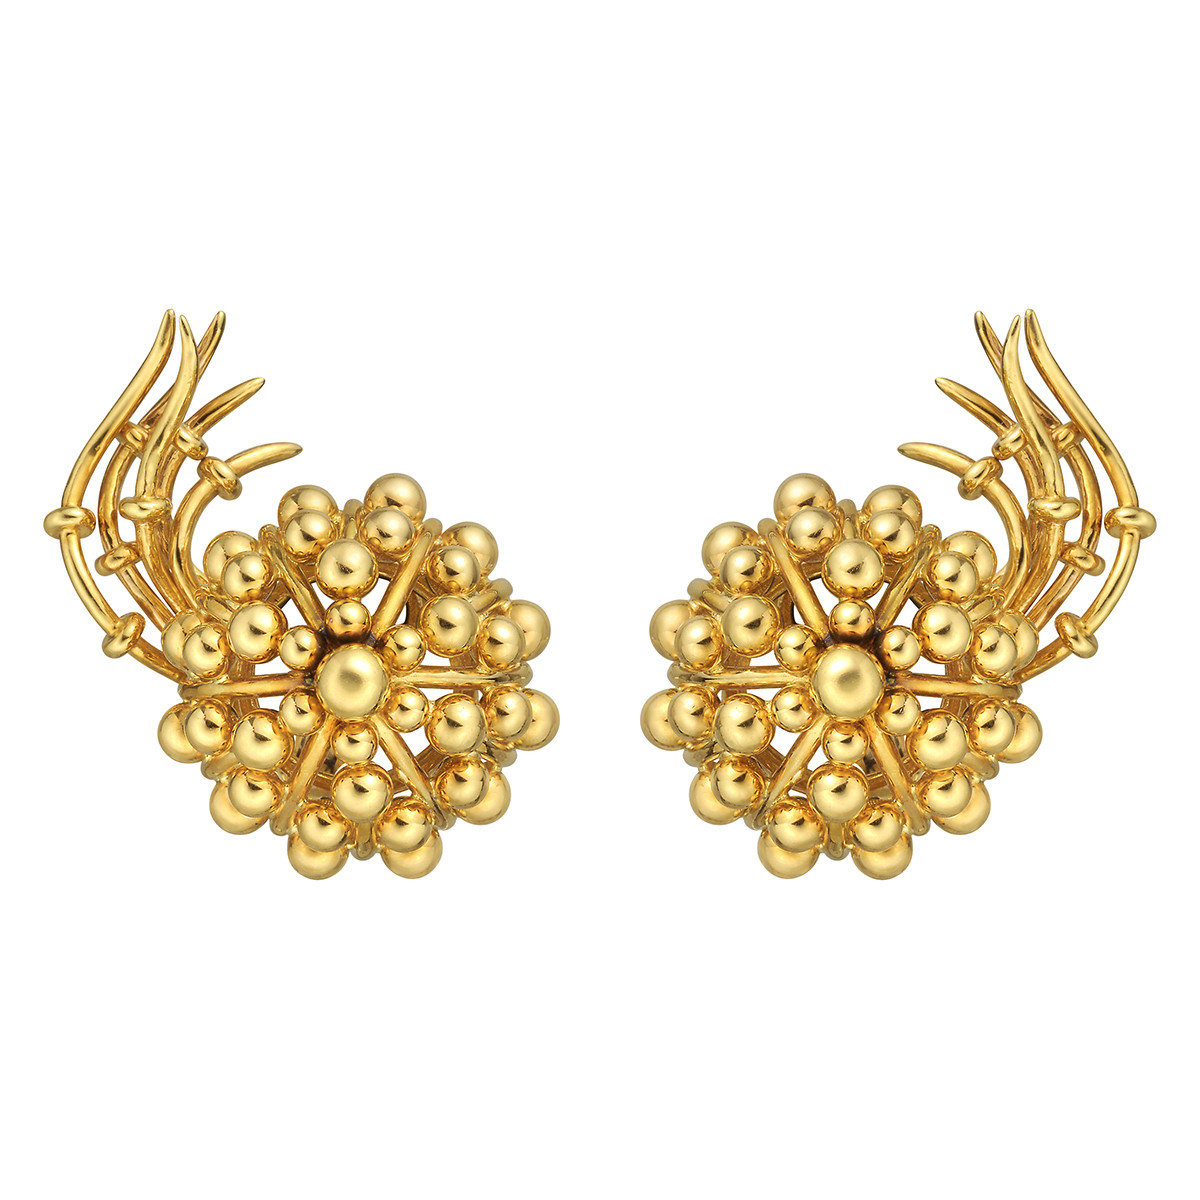 Schlumberger 18k Yellow Gold Comet Earrings